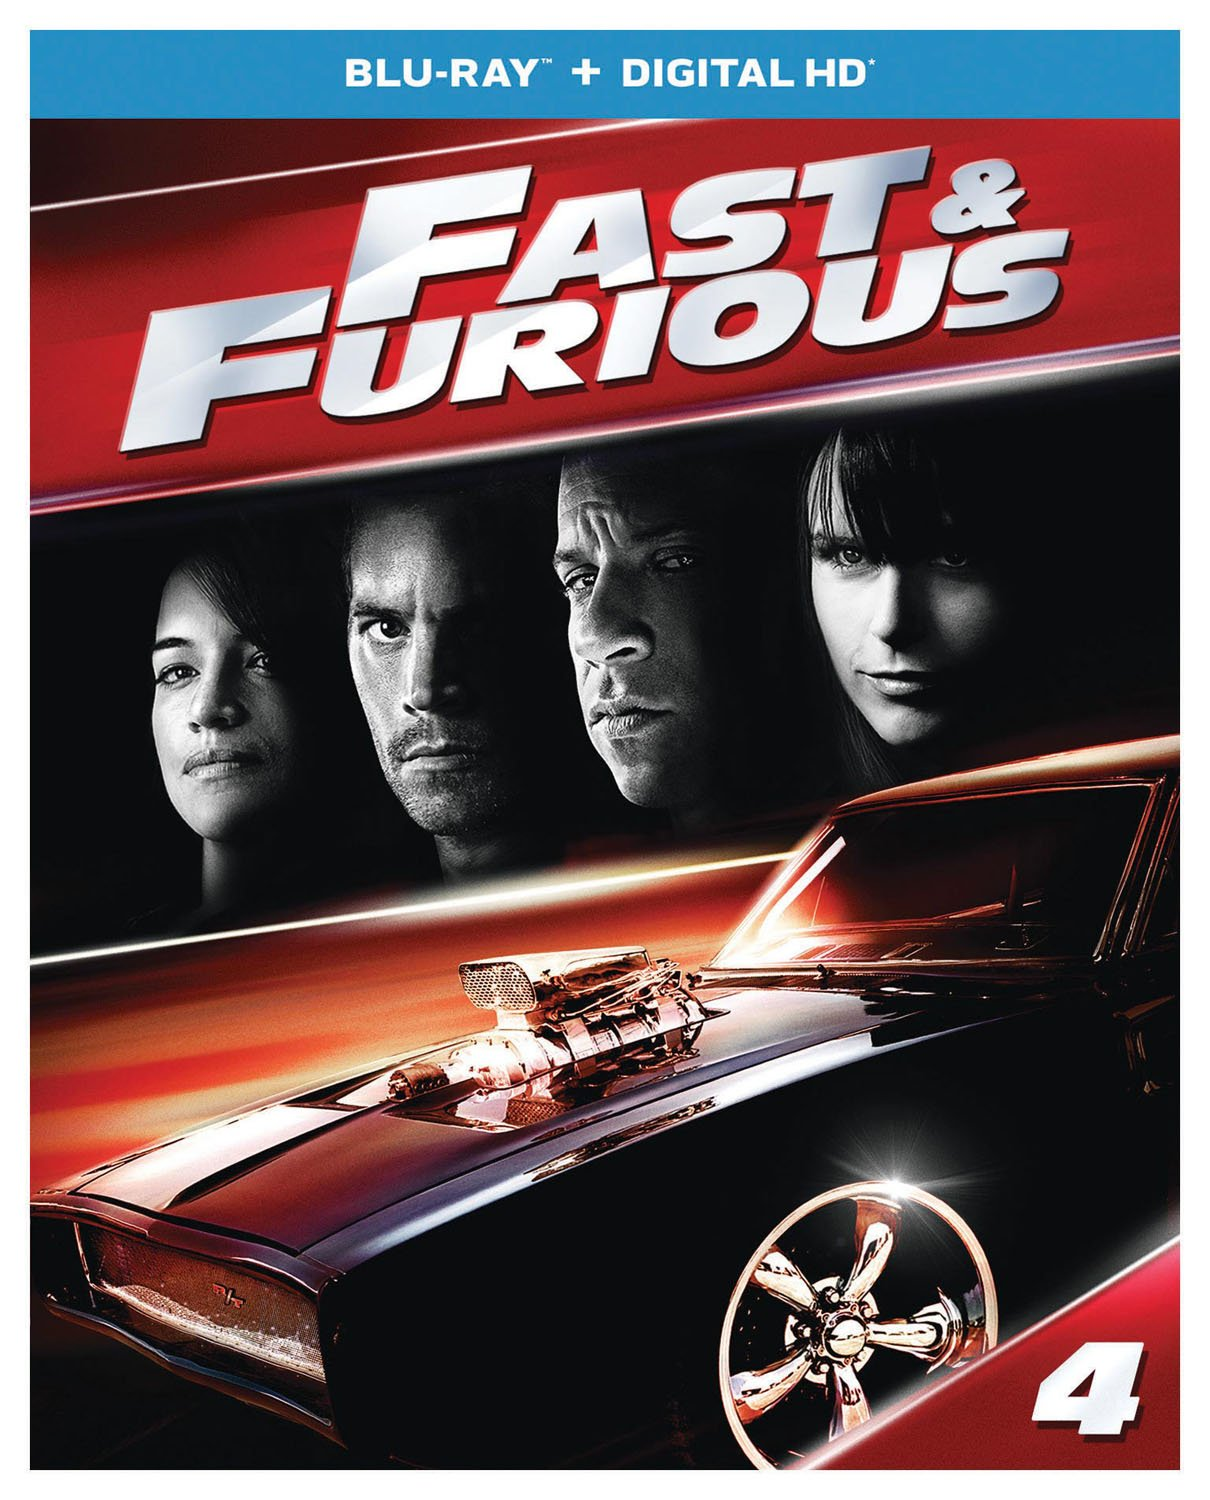 The Fast & The Furious [Movie] - Fast & Furious (2009)